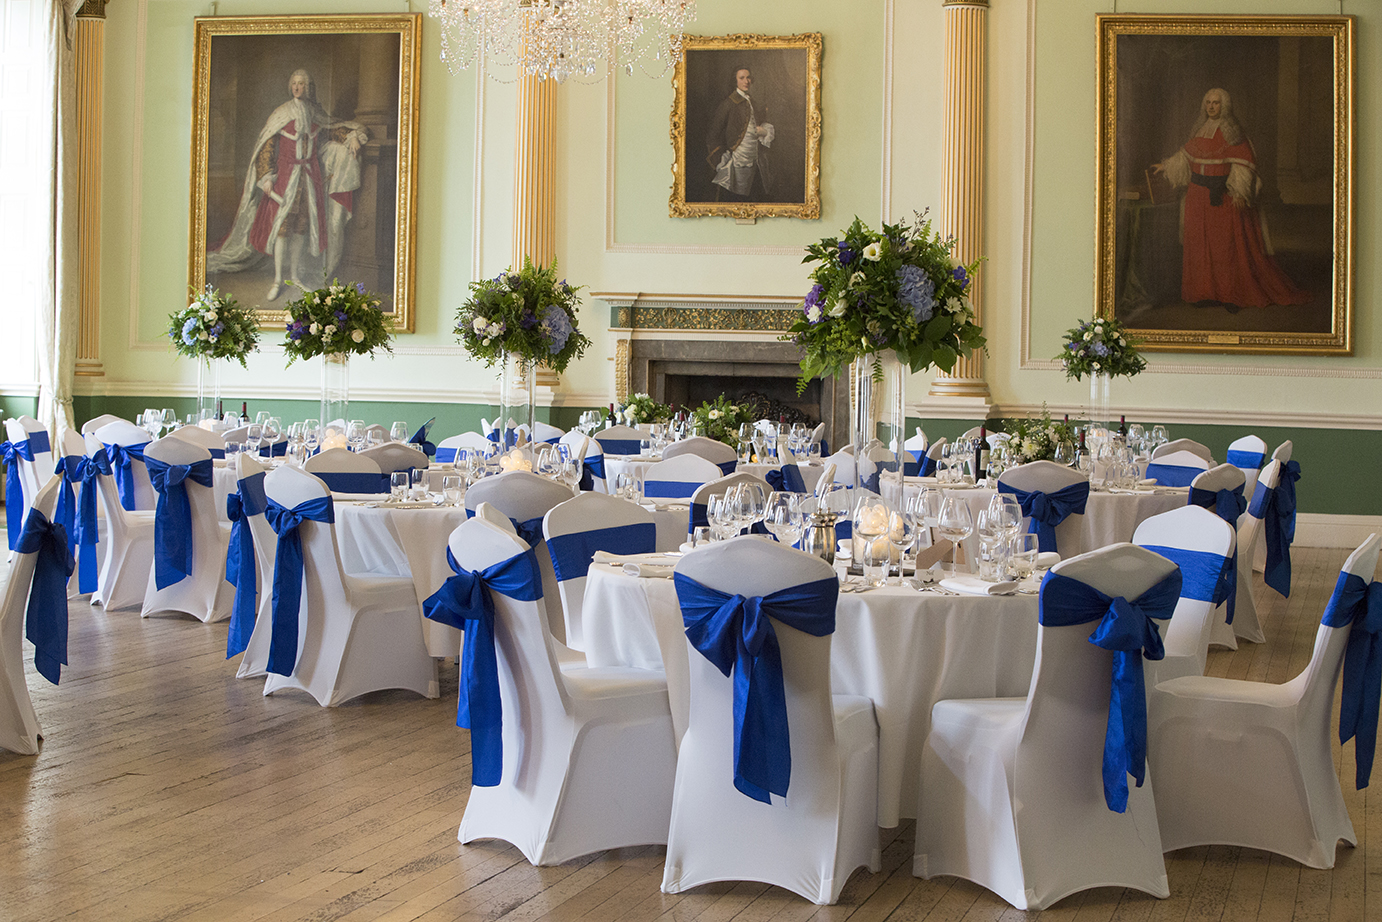 Image: Wedding reception in the Banqueting Room